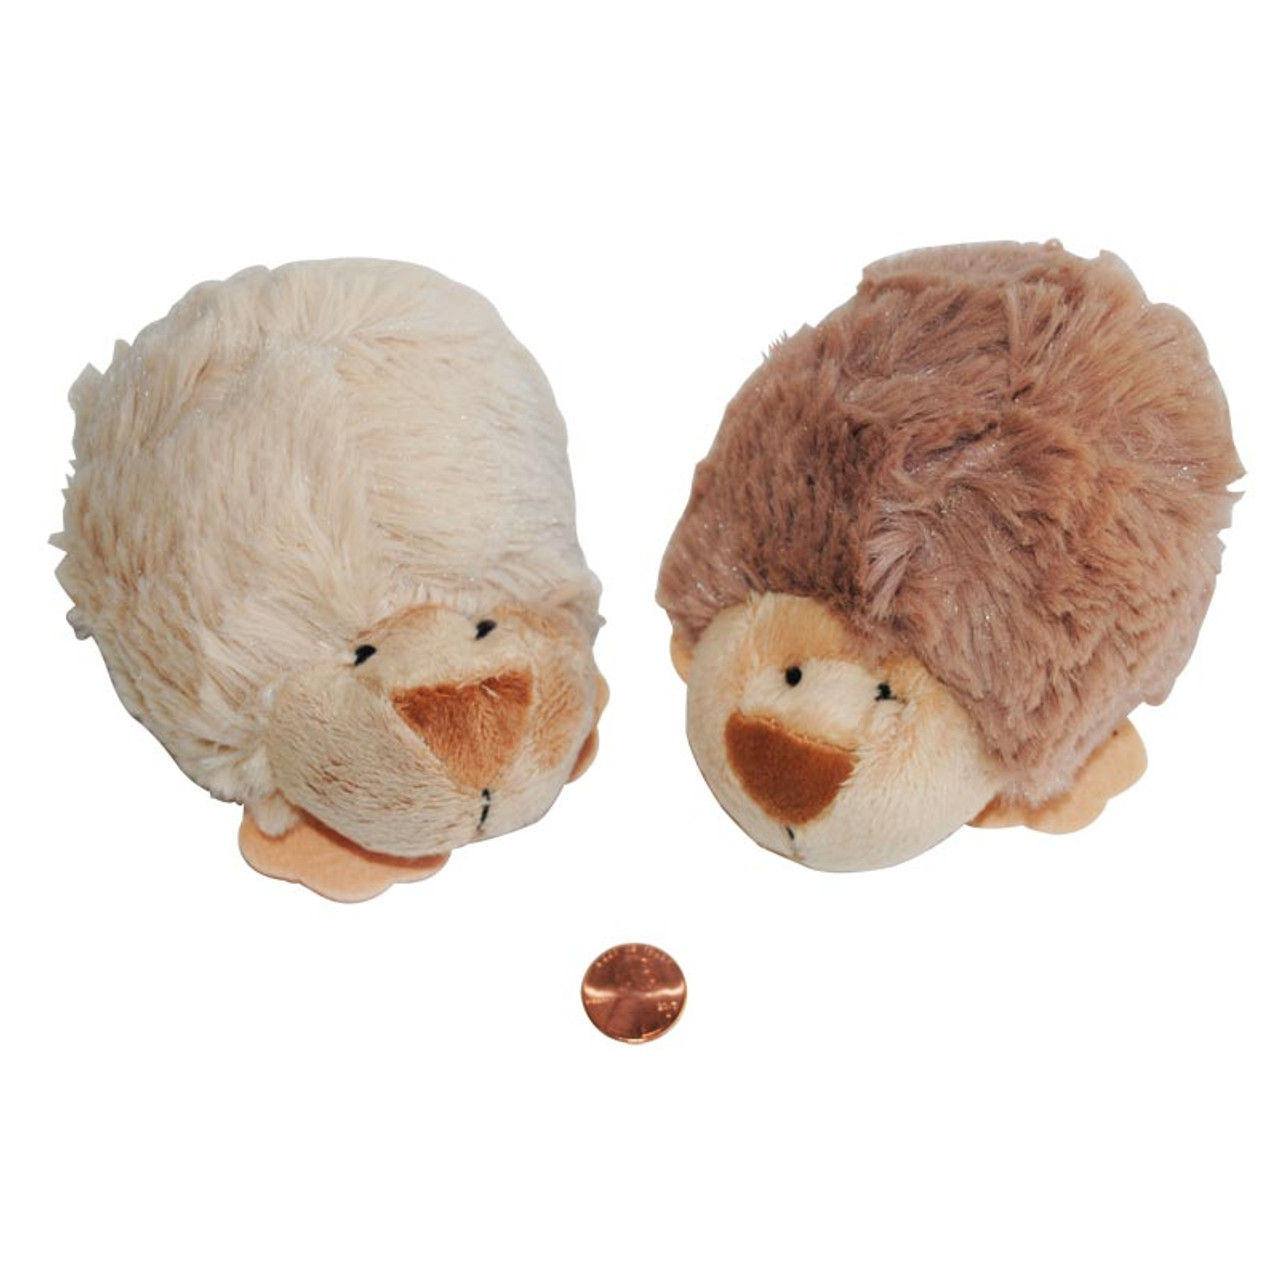 Stuffed Hedgehogs Adorable And Soft